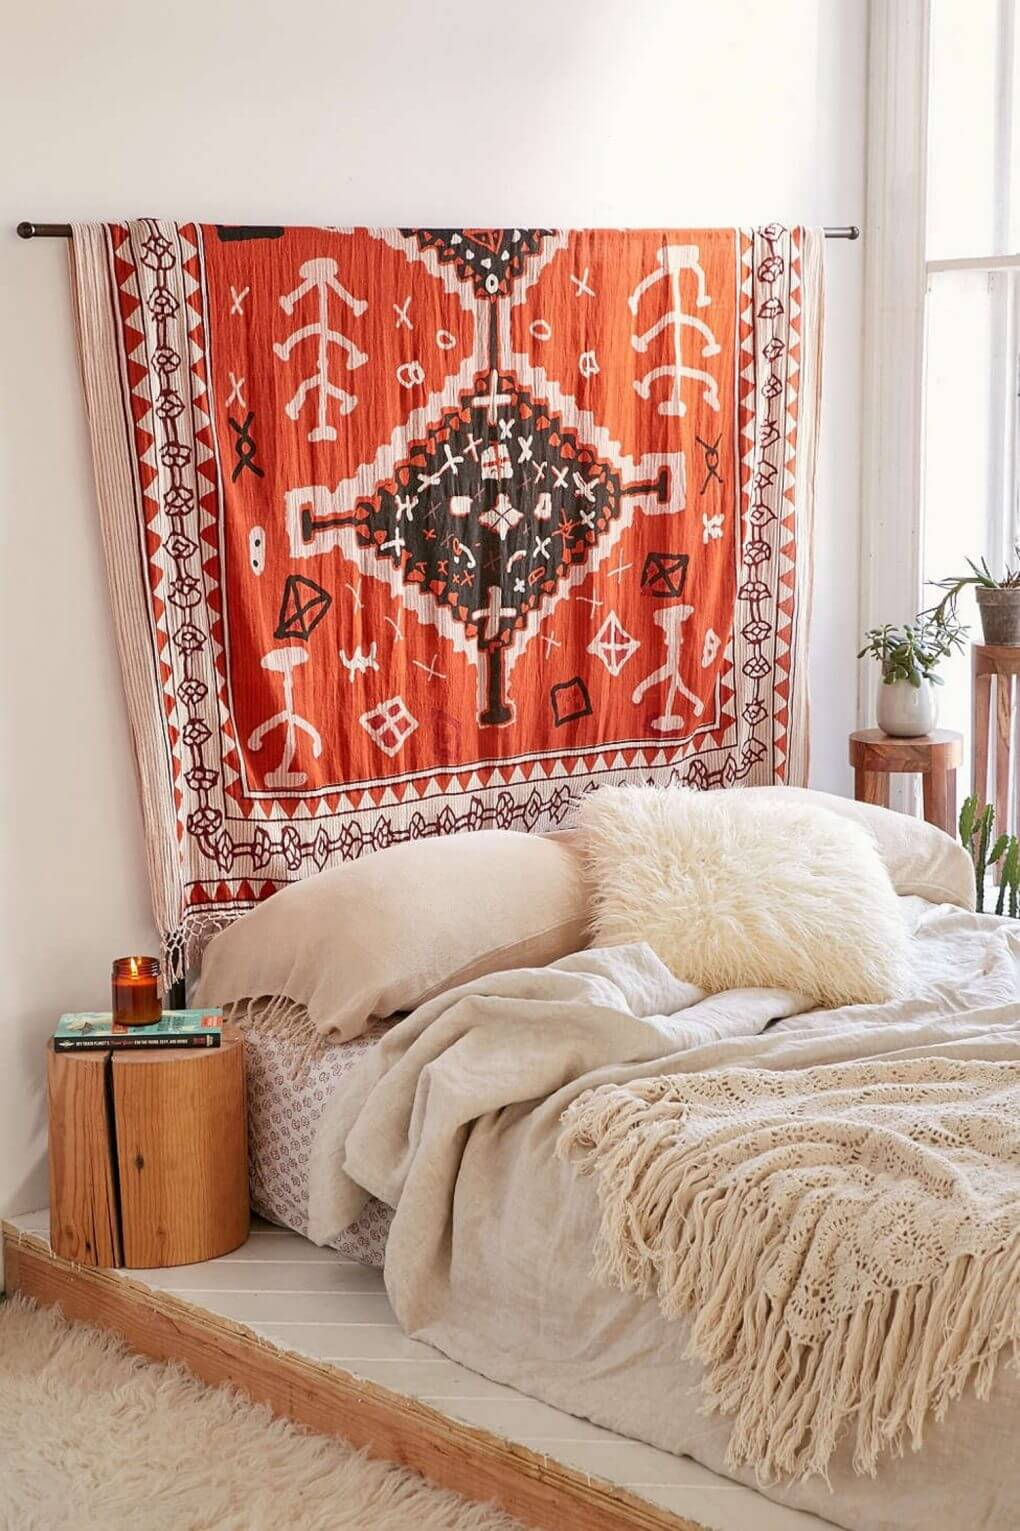 Minimal Bedroom With Leafy Decor and a Patterned Rug Above the Bed | Bohemian Chic Interior Design Ideas | FarmFoodFamily.com